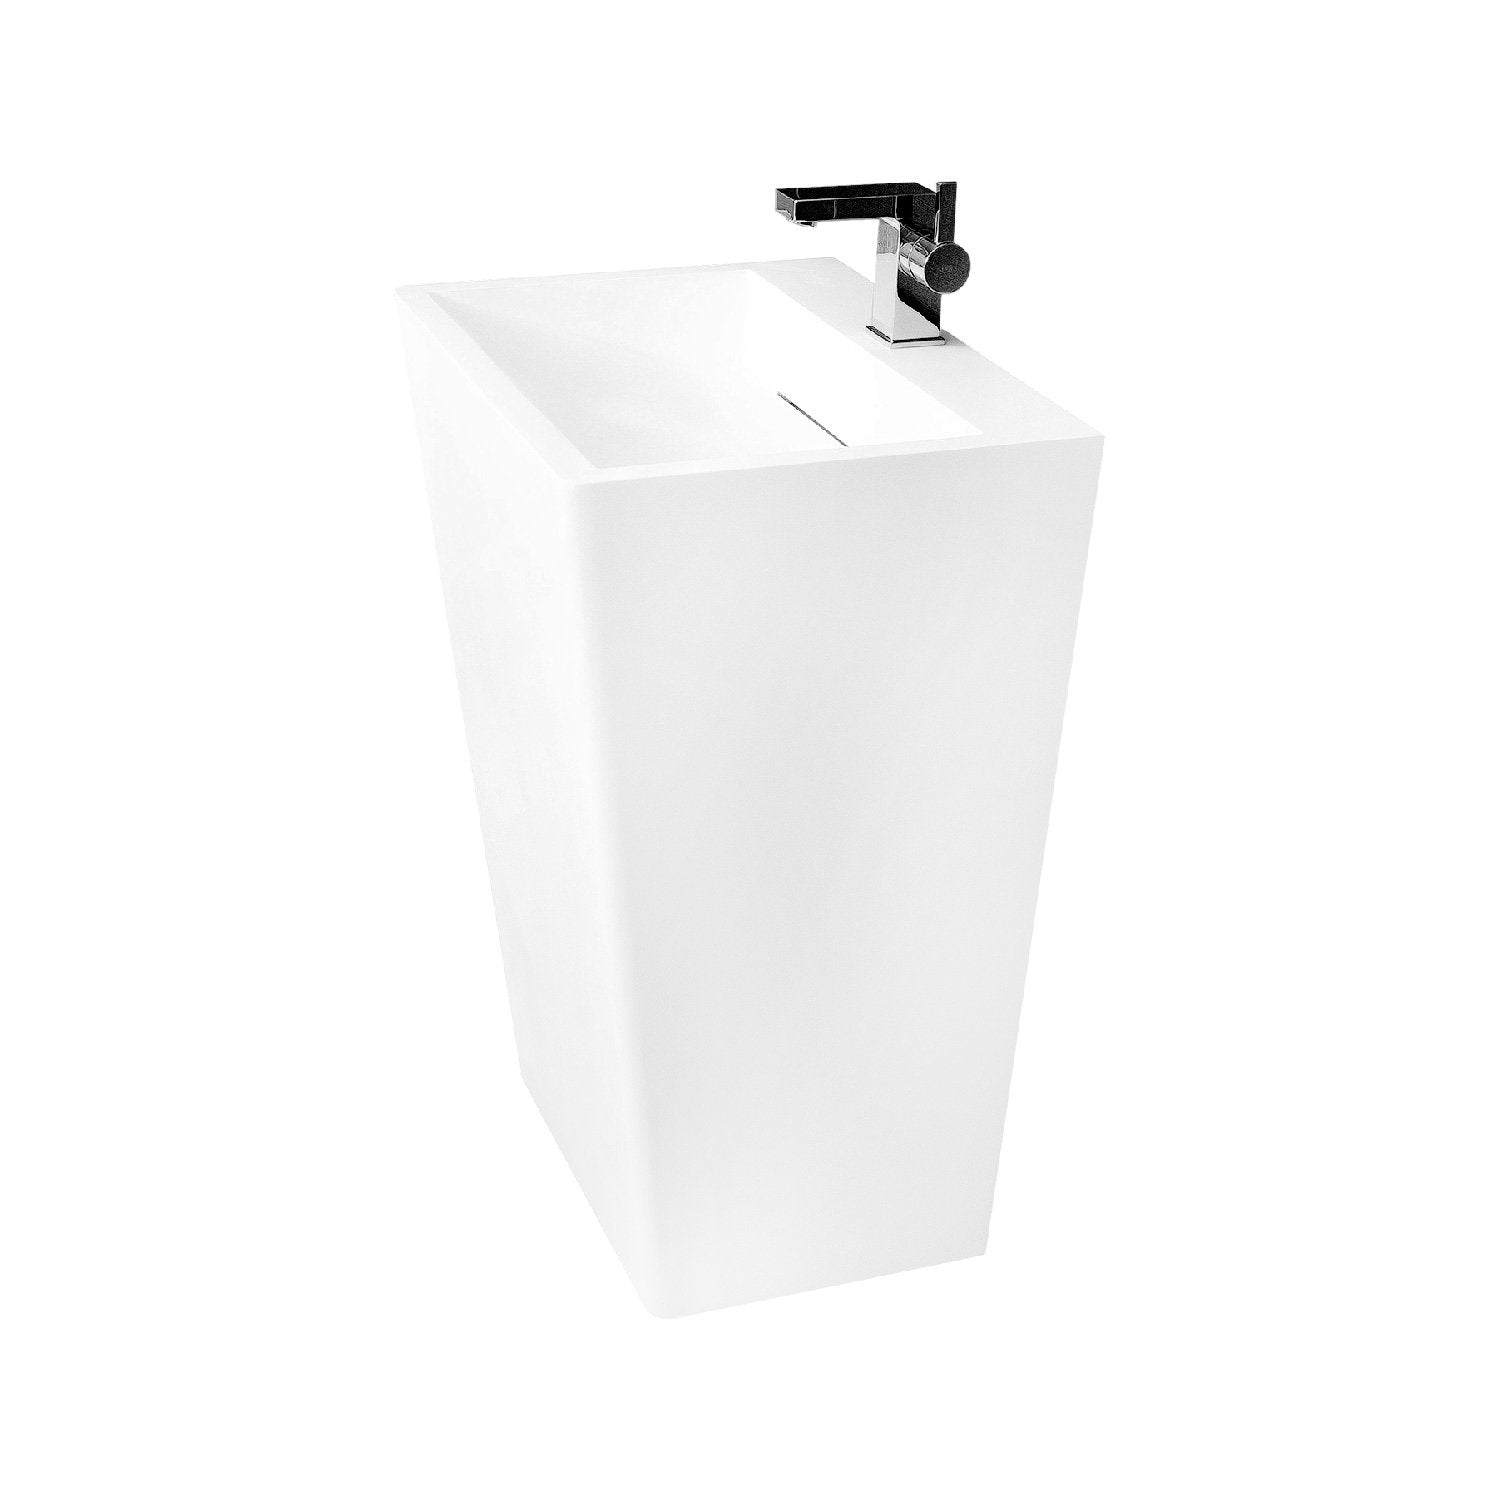 DAX Solid Surface Rectangle Pedestal Freestanding Bathroom Sink, White Matte Finish, 21-1/4 x 17-1/8 x 32-7/8 Inches (DAX-AB-1384)